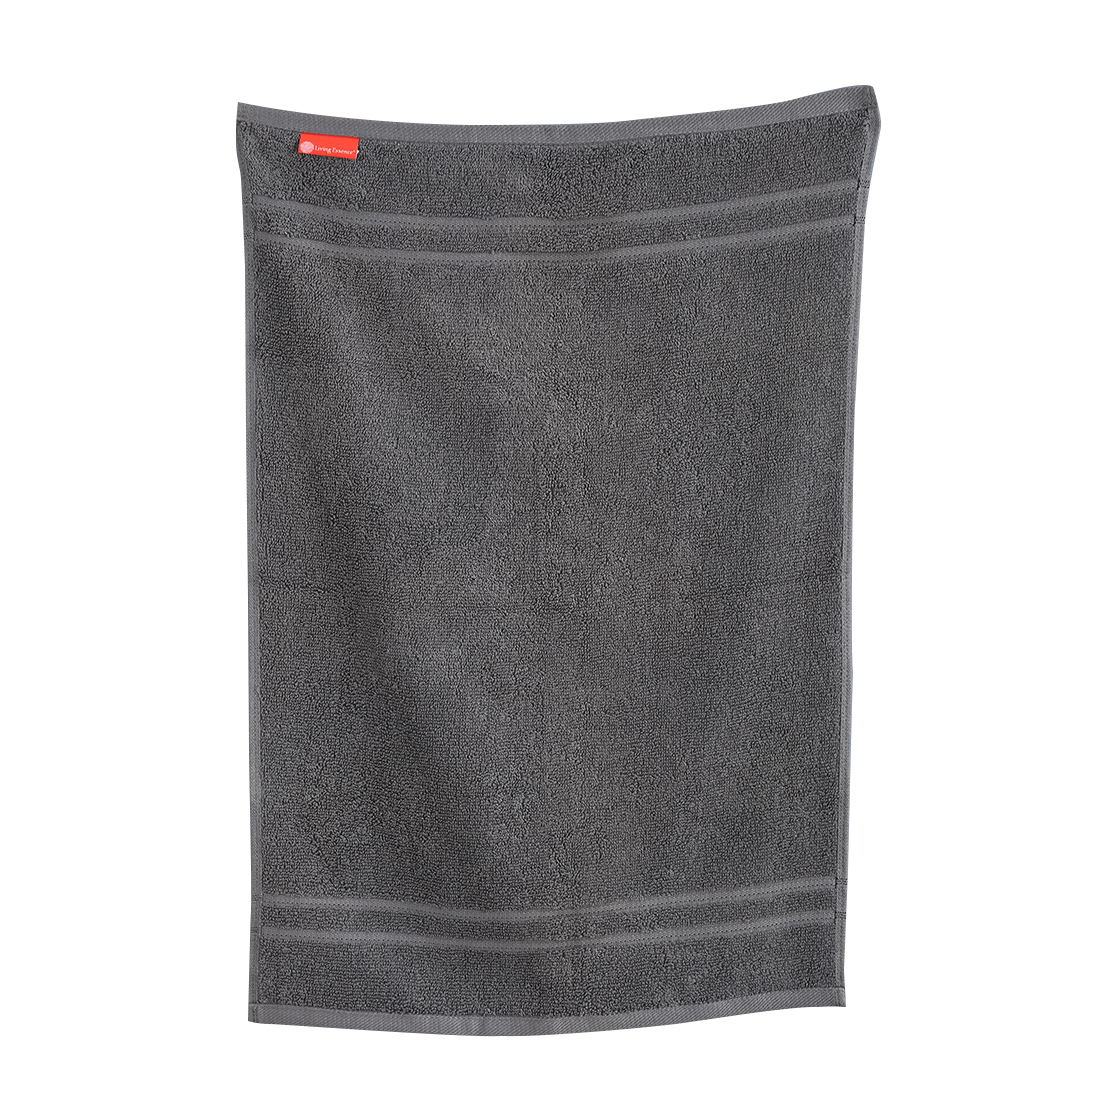 Hand Towel 40X60 Nora Grey Combed Cotton Hand Towels in Grey Colour by Living Essence